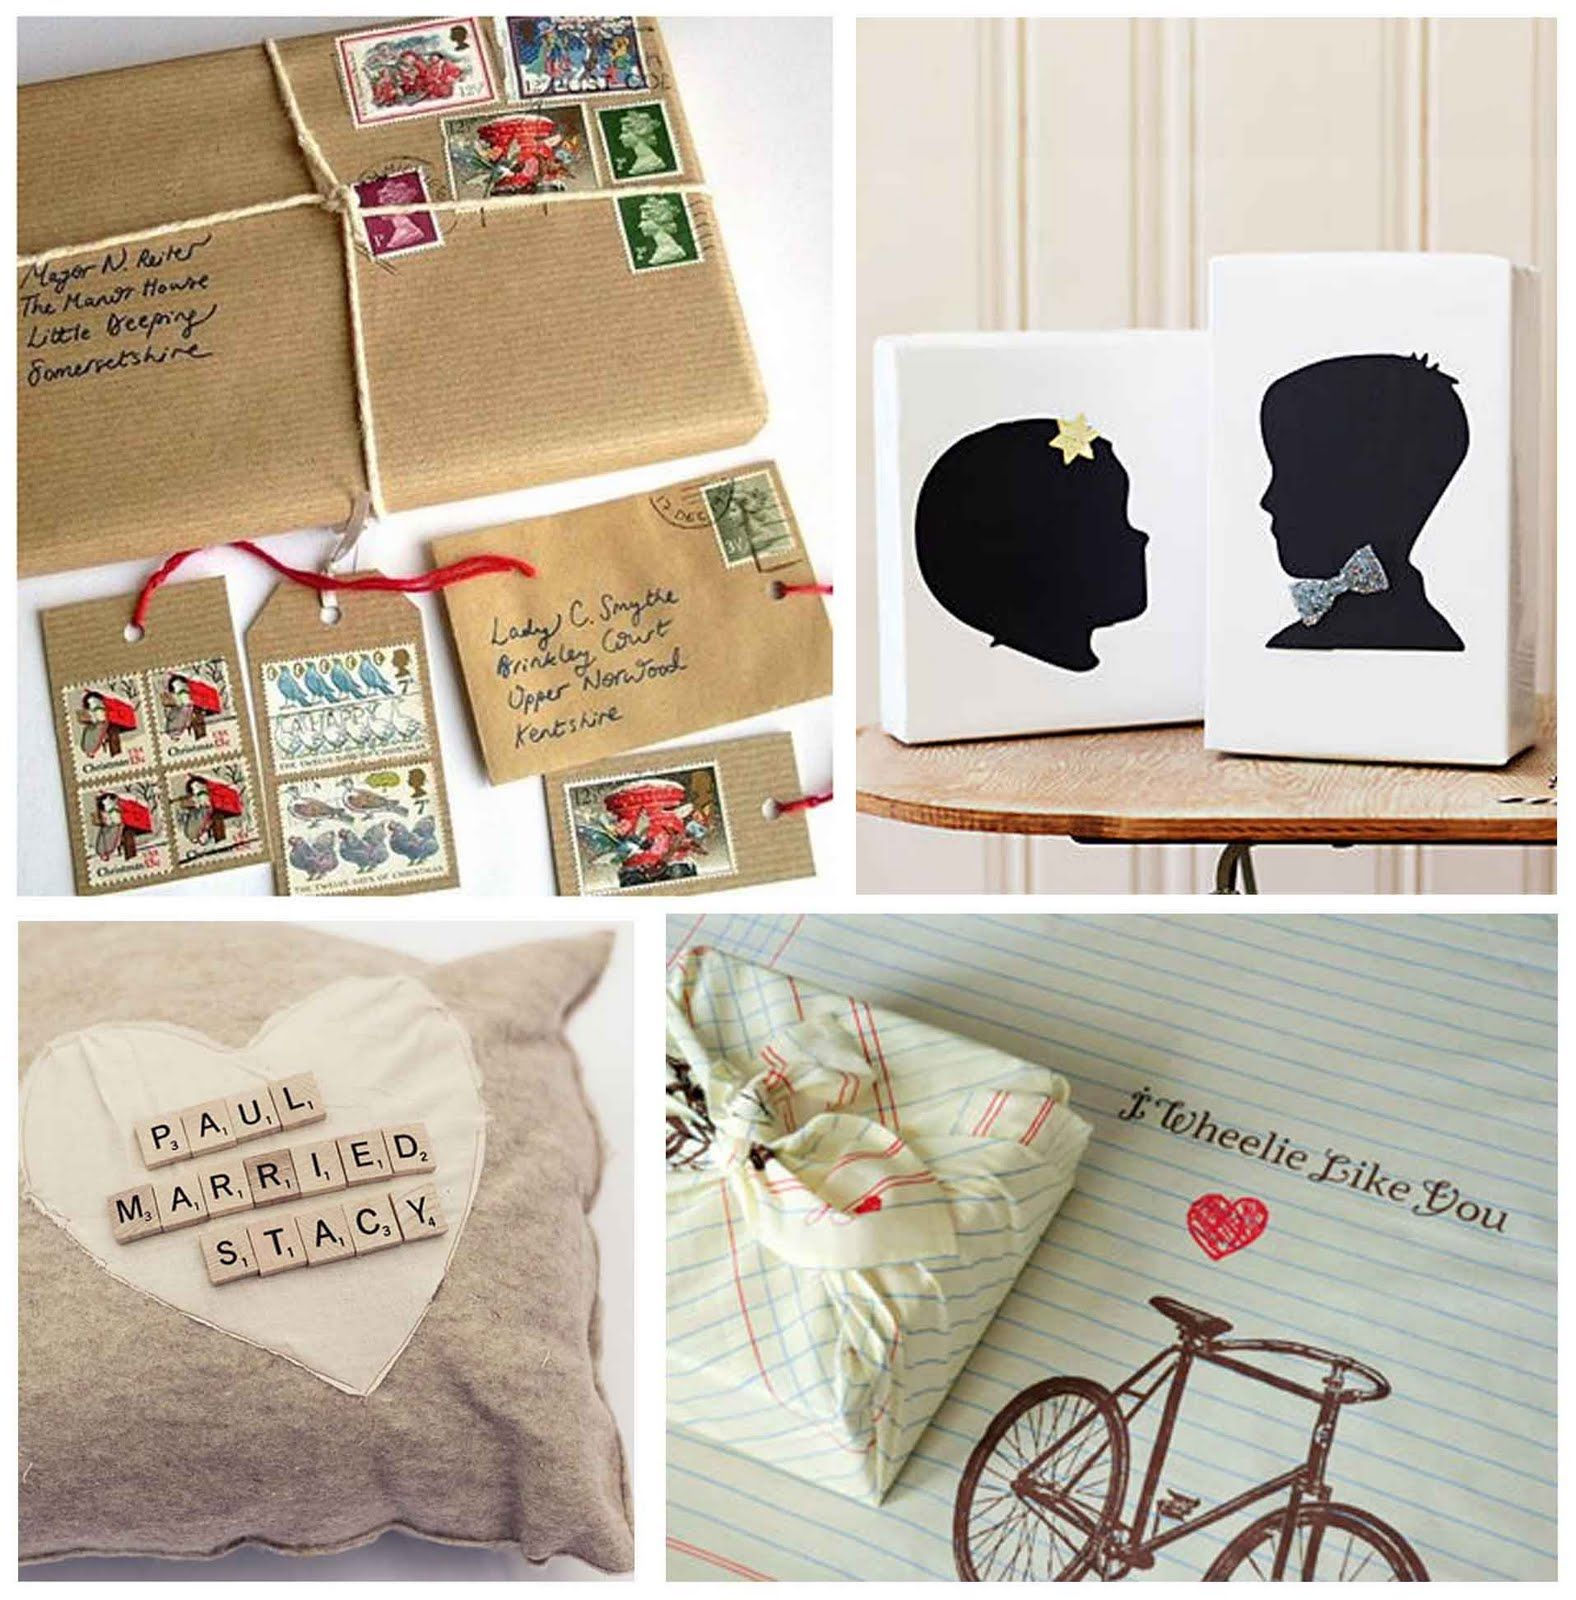 100 wedding gift wrap ideas creative christmas gift simply fun stuff creative wedding gift wrap ideas gift wrapping negle Images